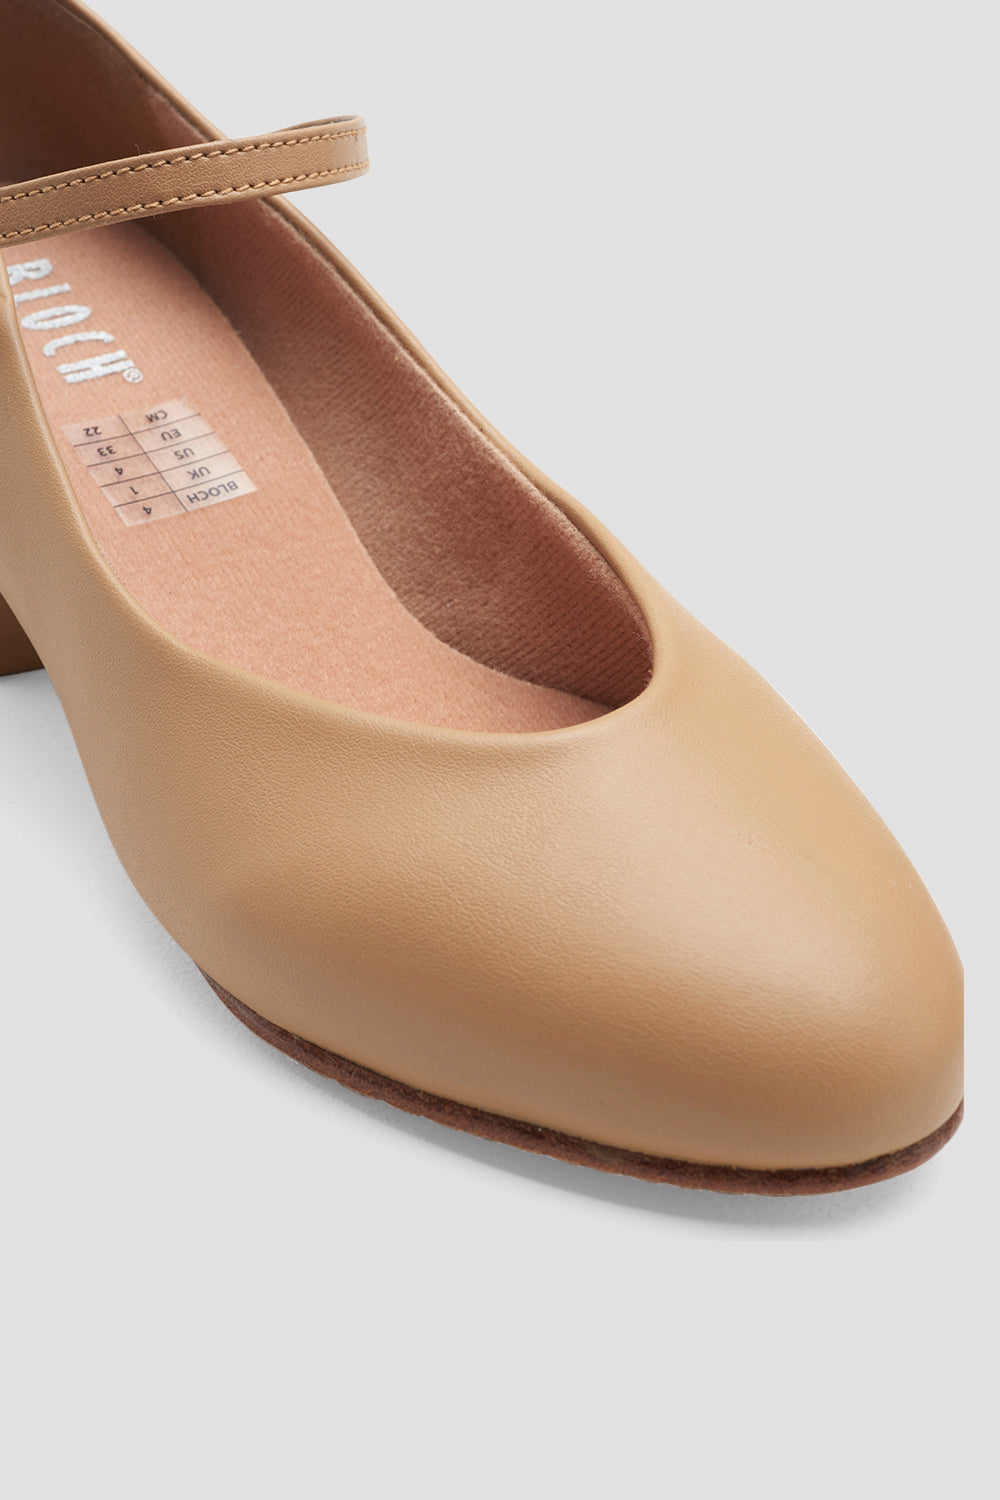 Ladies Broadway-Lo Character Shoes - BLOCH US